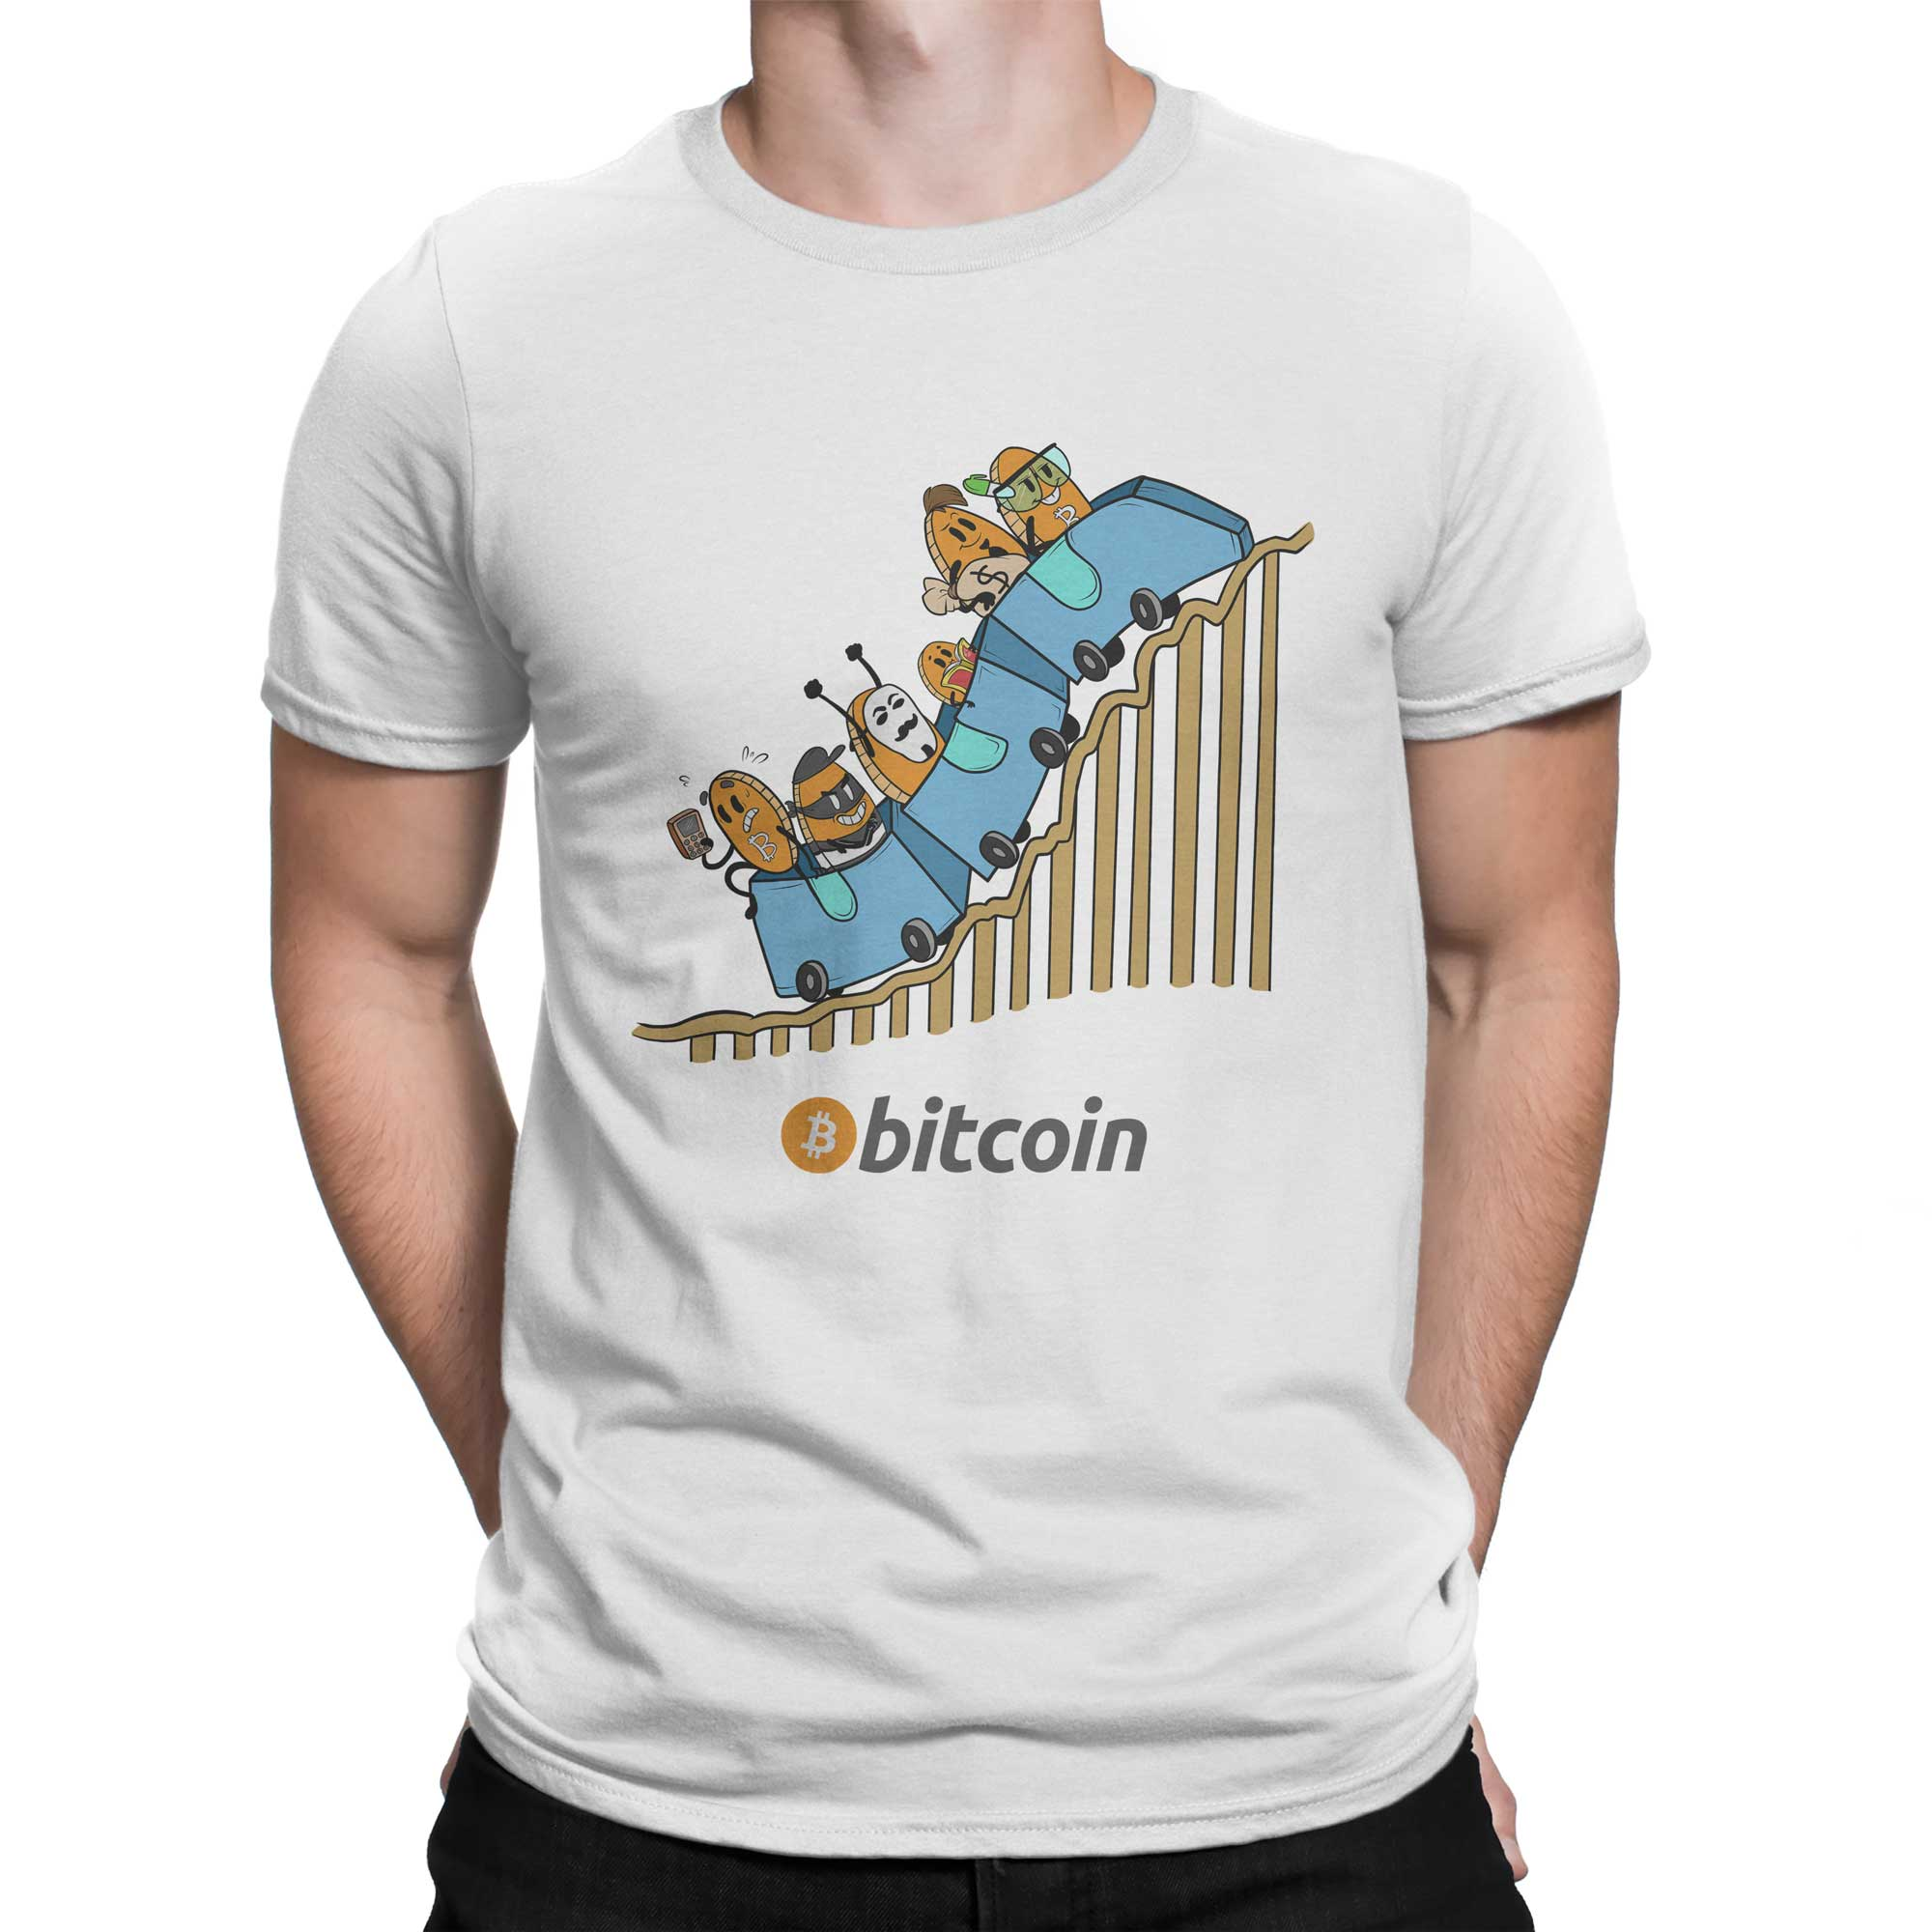 Bitcoin Cryptocurrency Roller coaster Colored T-Shirt ...